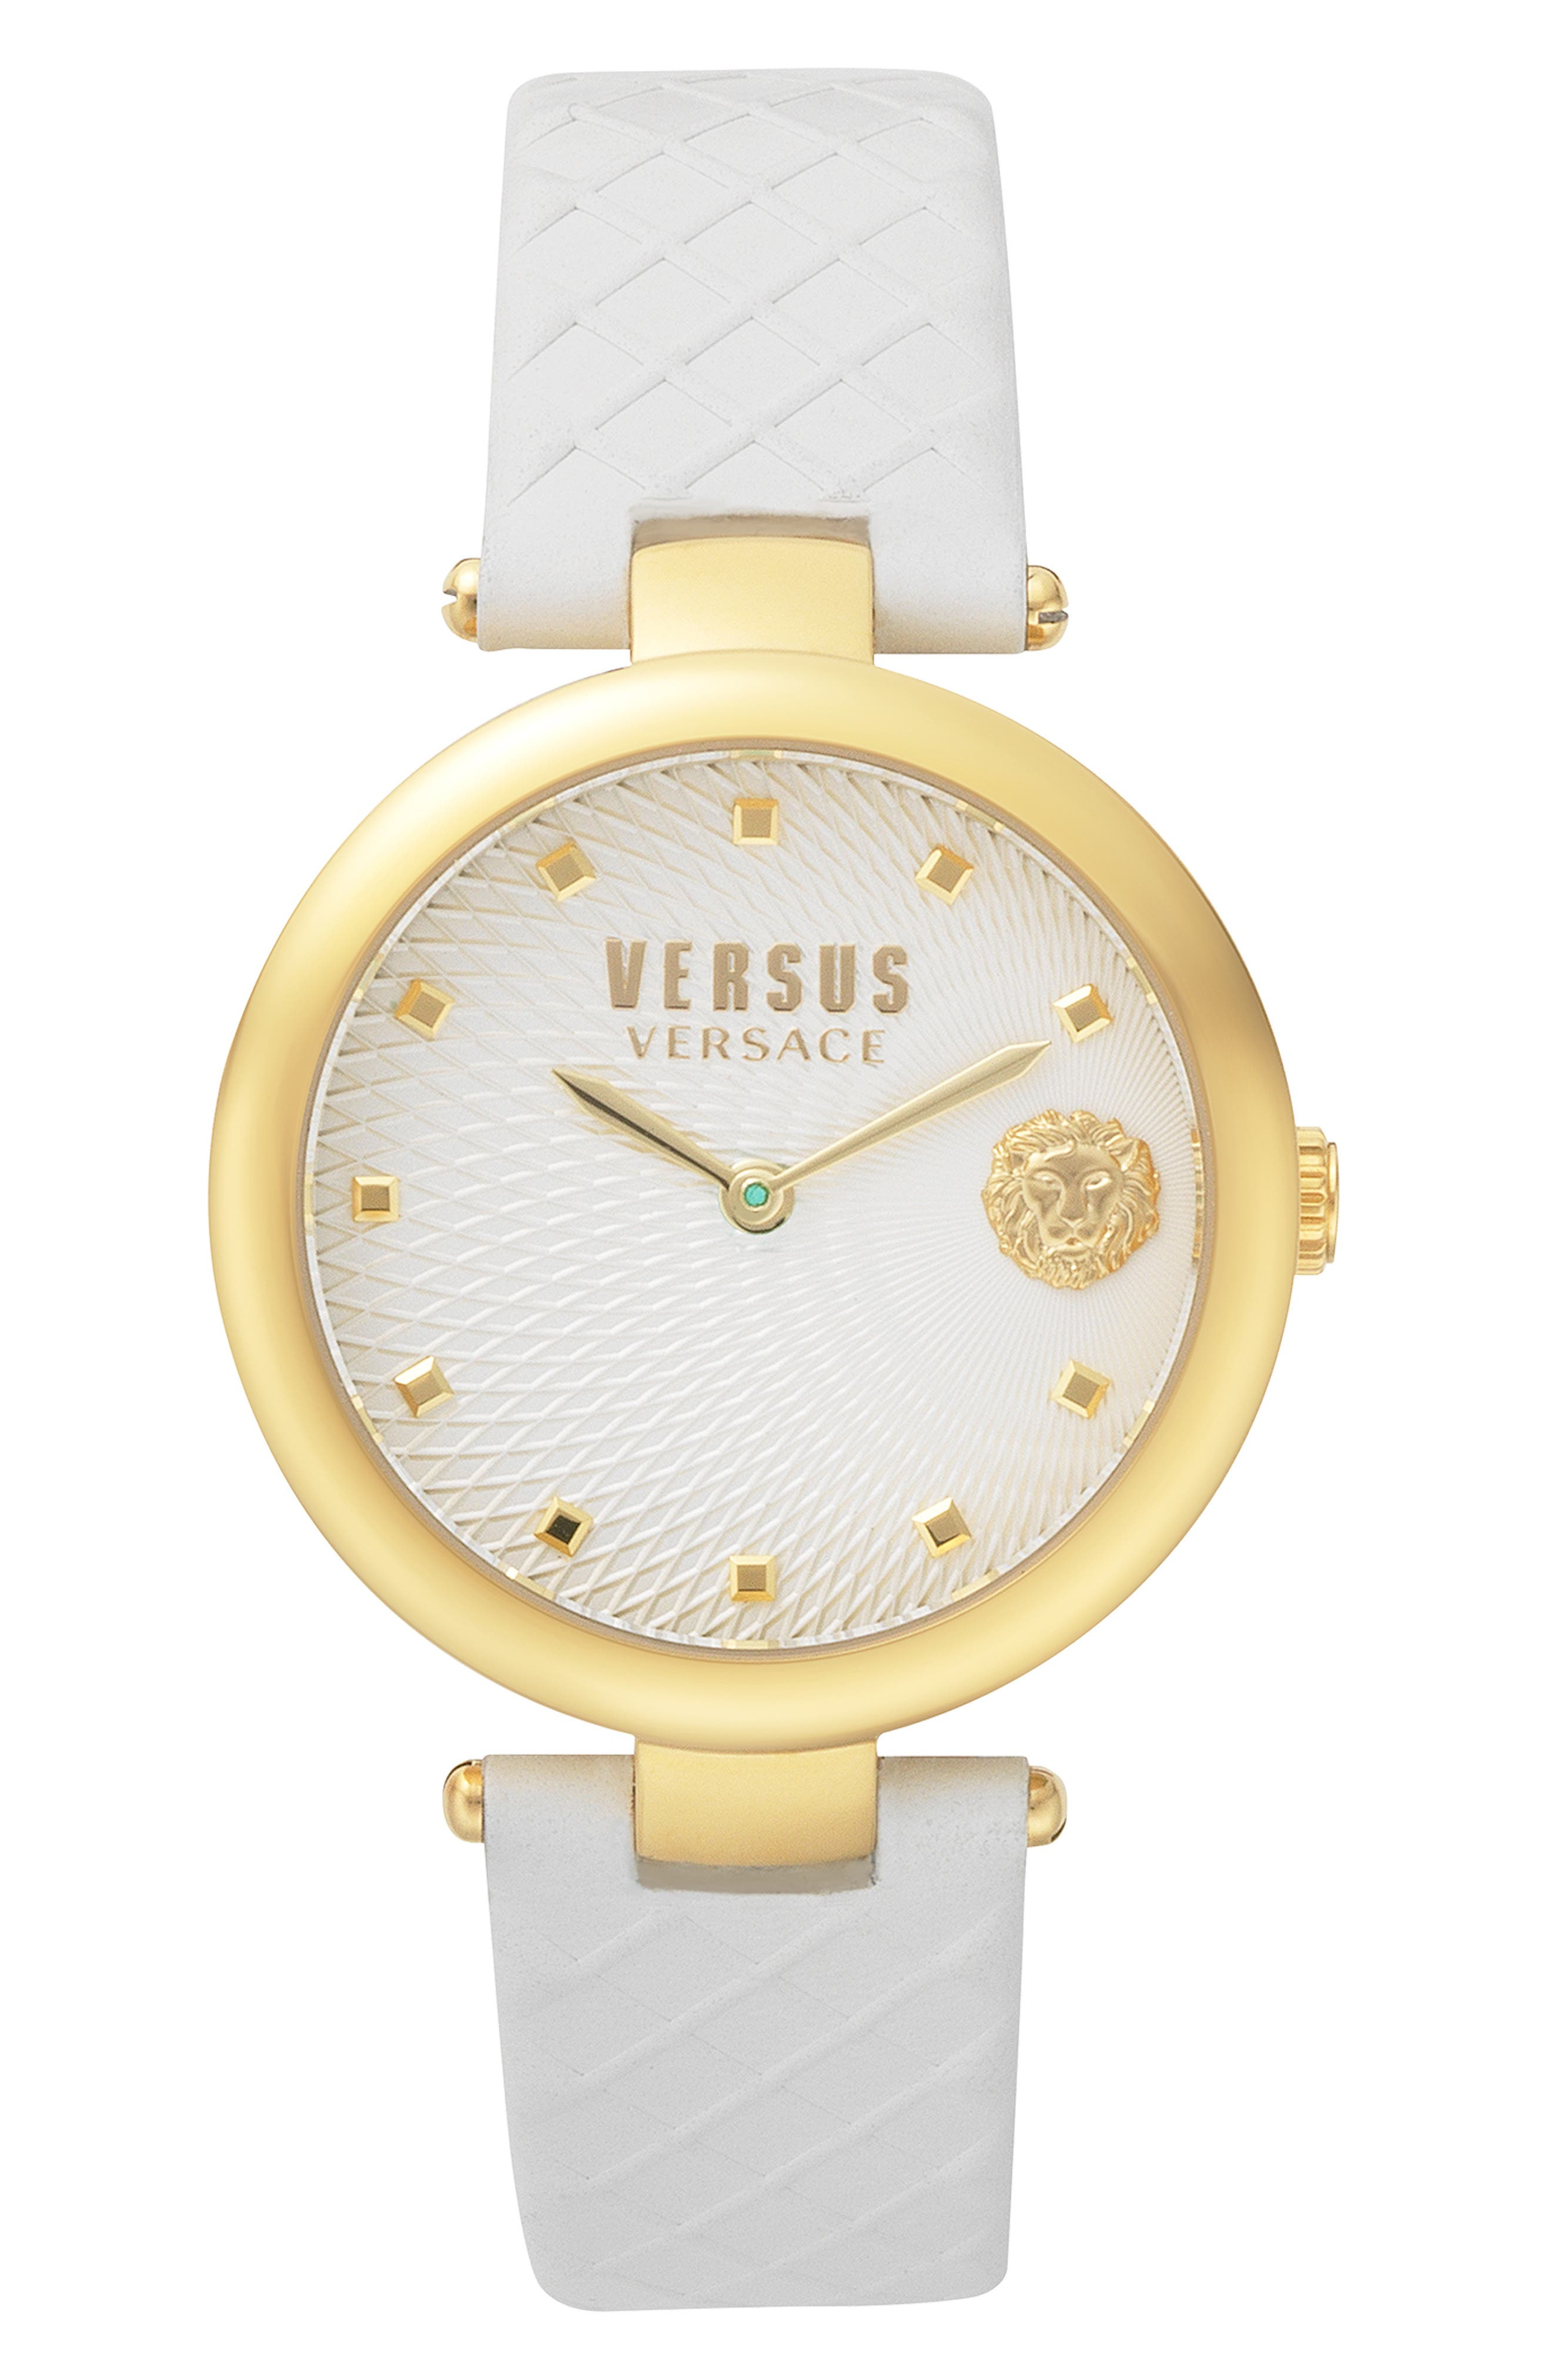 VERSUS VERSACE Buffle Bay Leather Strap Watch, 36mm, Main, color, WHITE/ GOLD